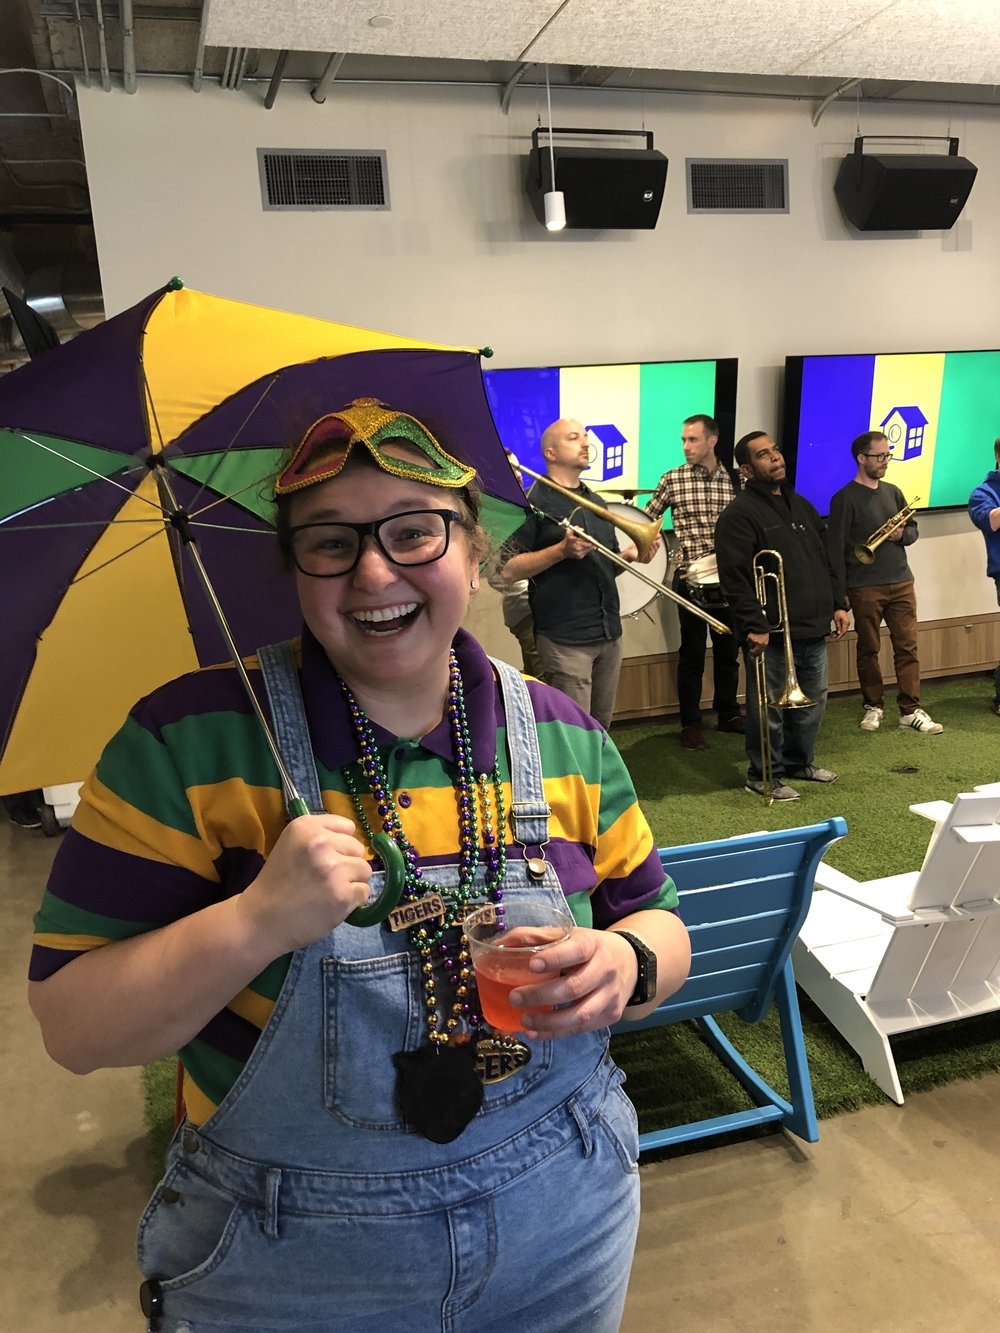 Meredith enjoying the Mardi Gras festivities at our office party in Austin.